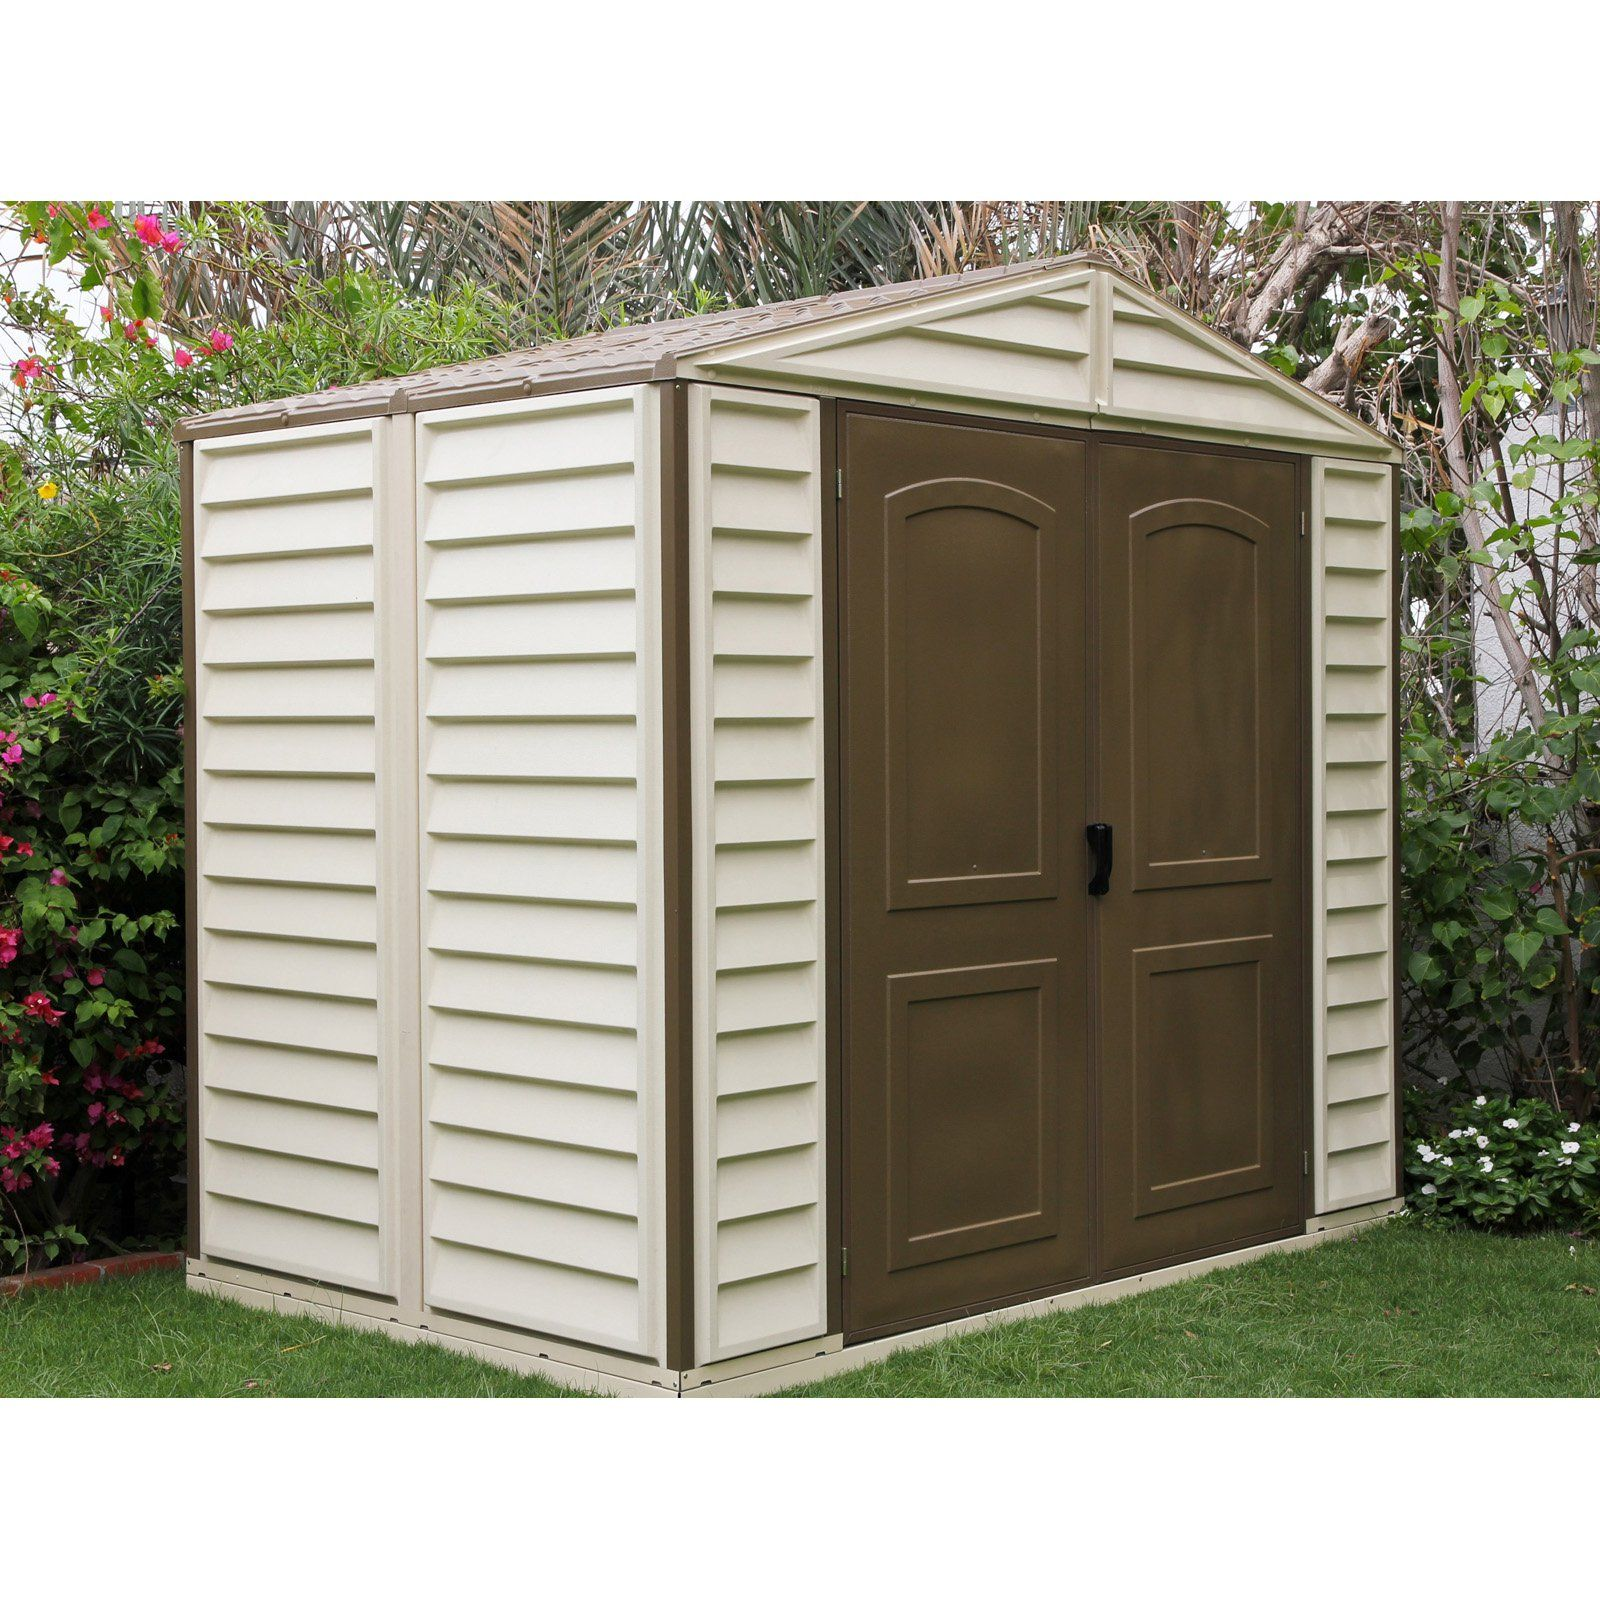 Pin By Ron Greenhoff On Ron S Borad Vinyl Sheds Garden Sheds For Sale Shed